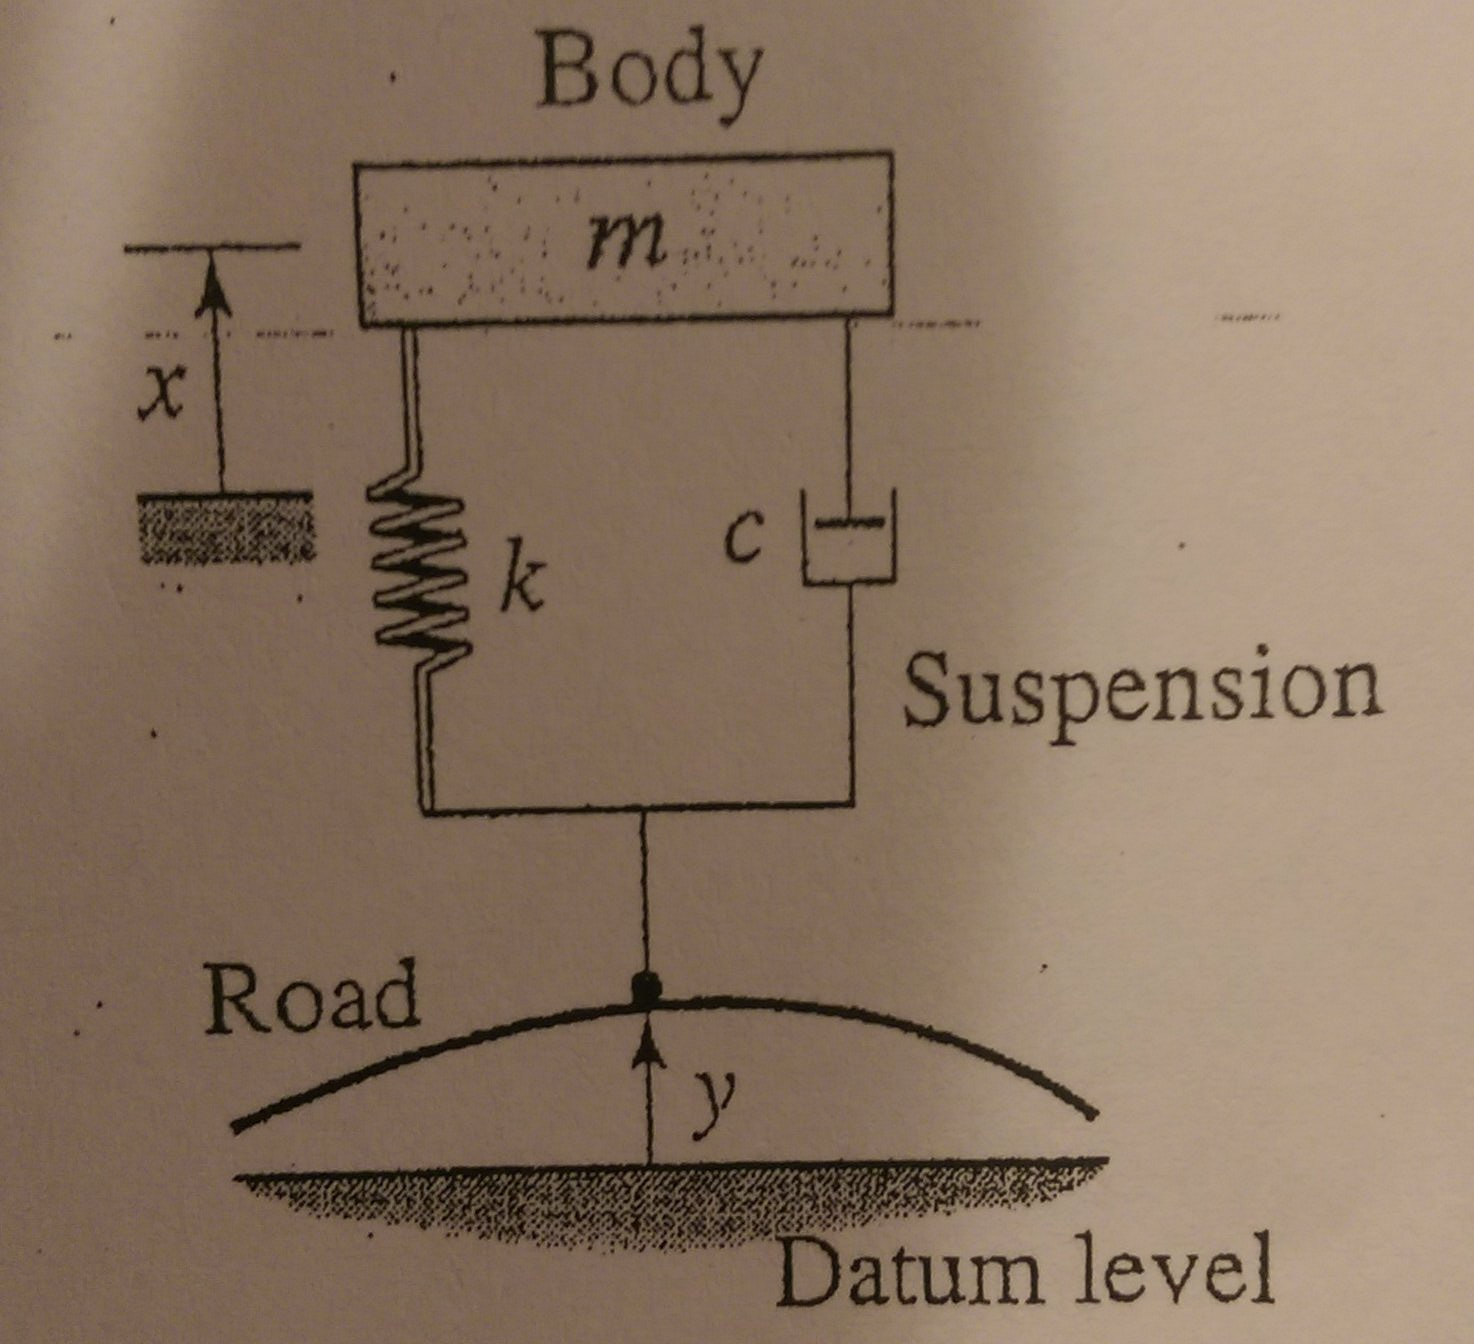 Solved The Quarter Car Model Of A Vehicle Suspension Is S On Figure Below Draw Freebody Diagram Showingandlabeling What Are Natural And Damped Frequency Vibration System